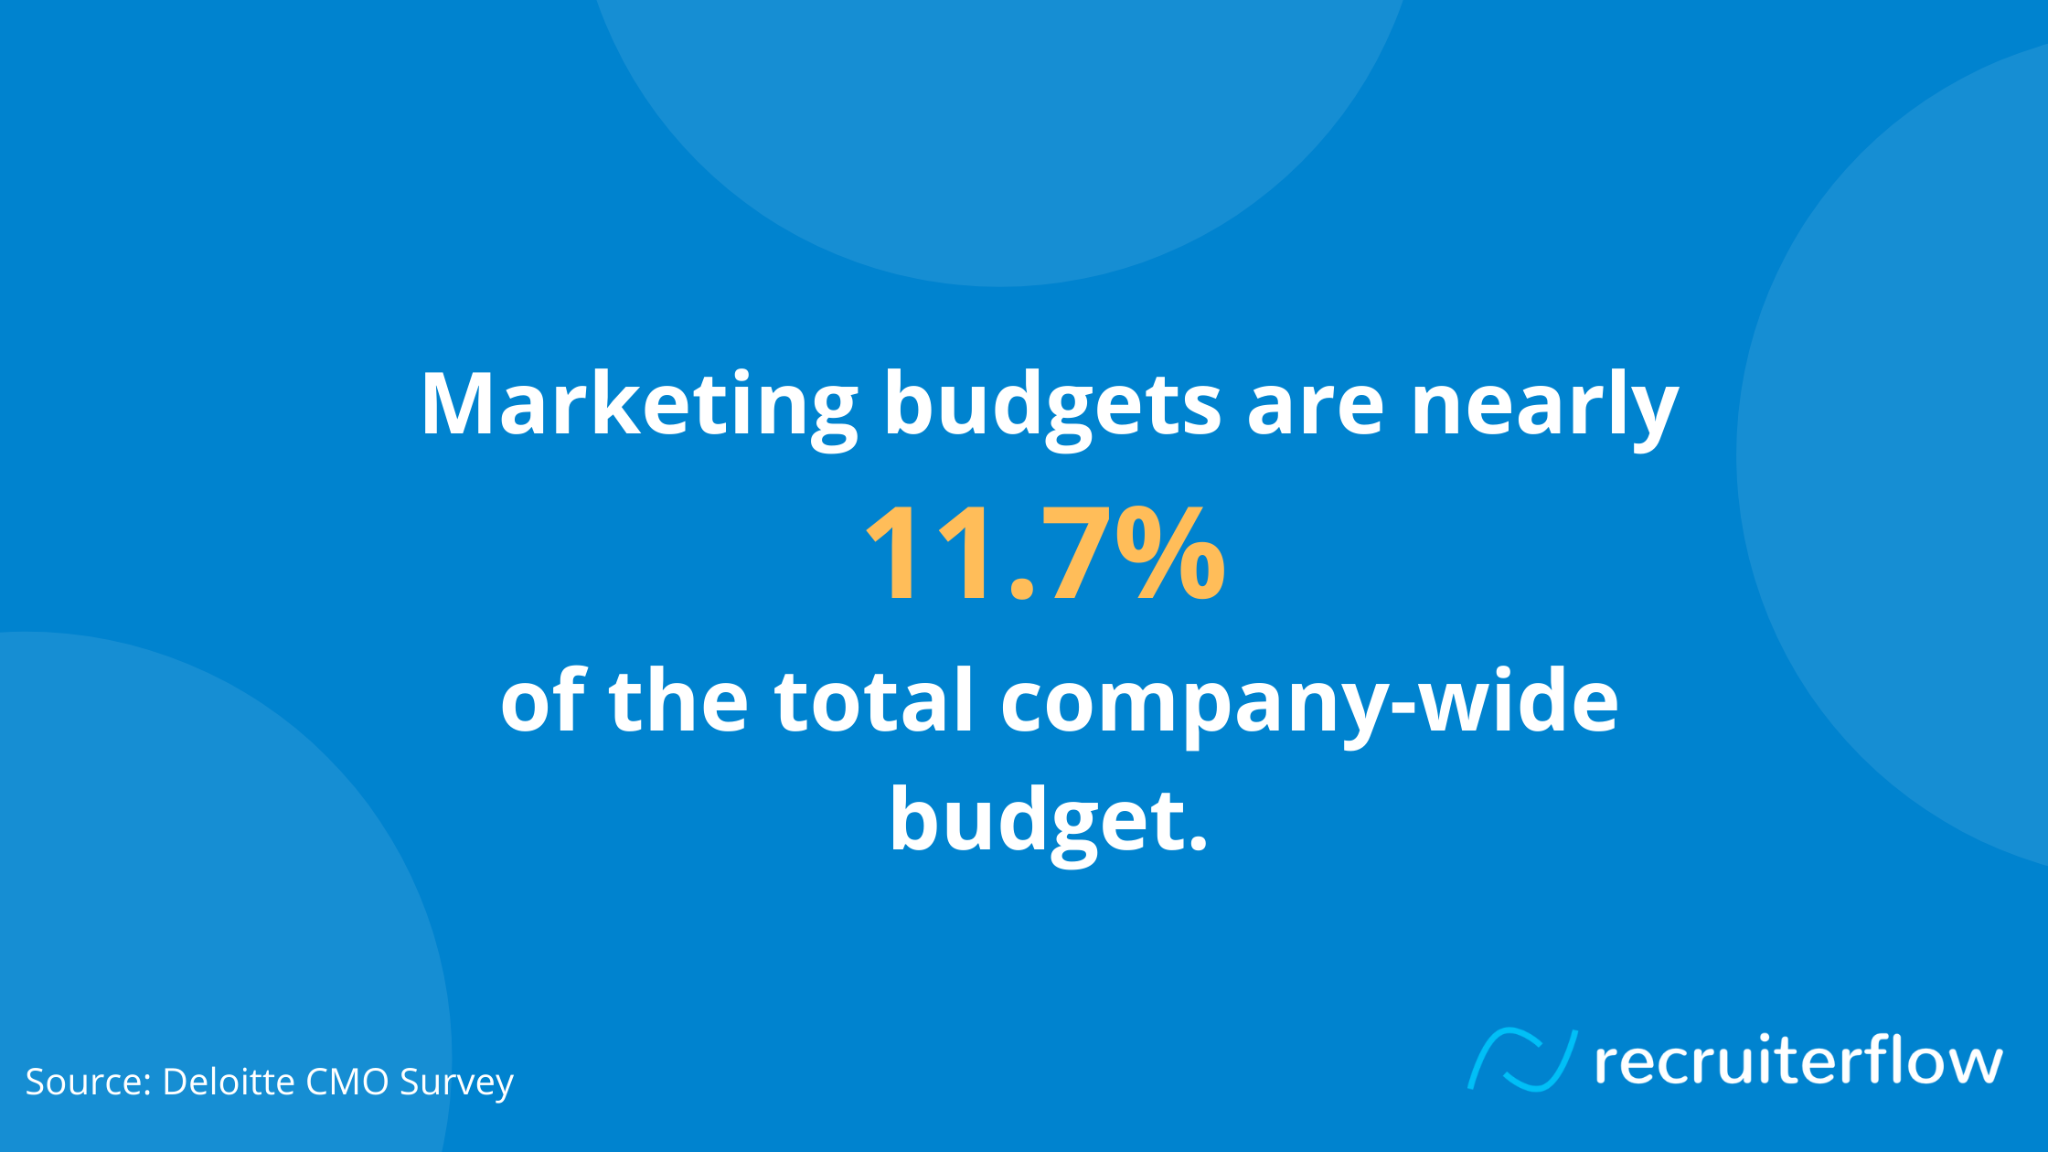 Deloitte's annual CMO survey, marketing budgets are nearly 11.7% of the total company-wide budget.